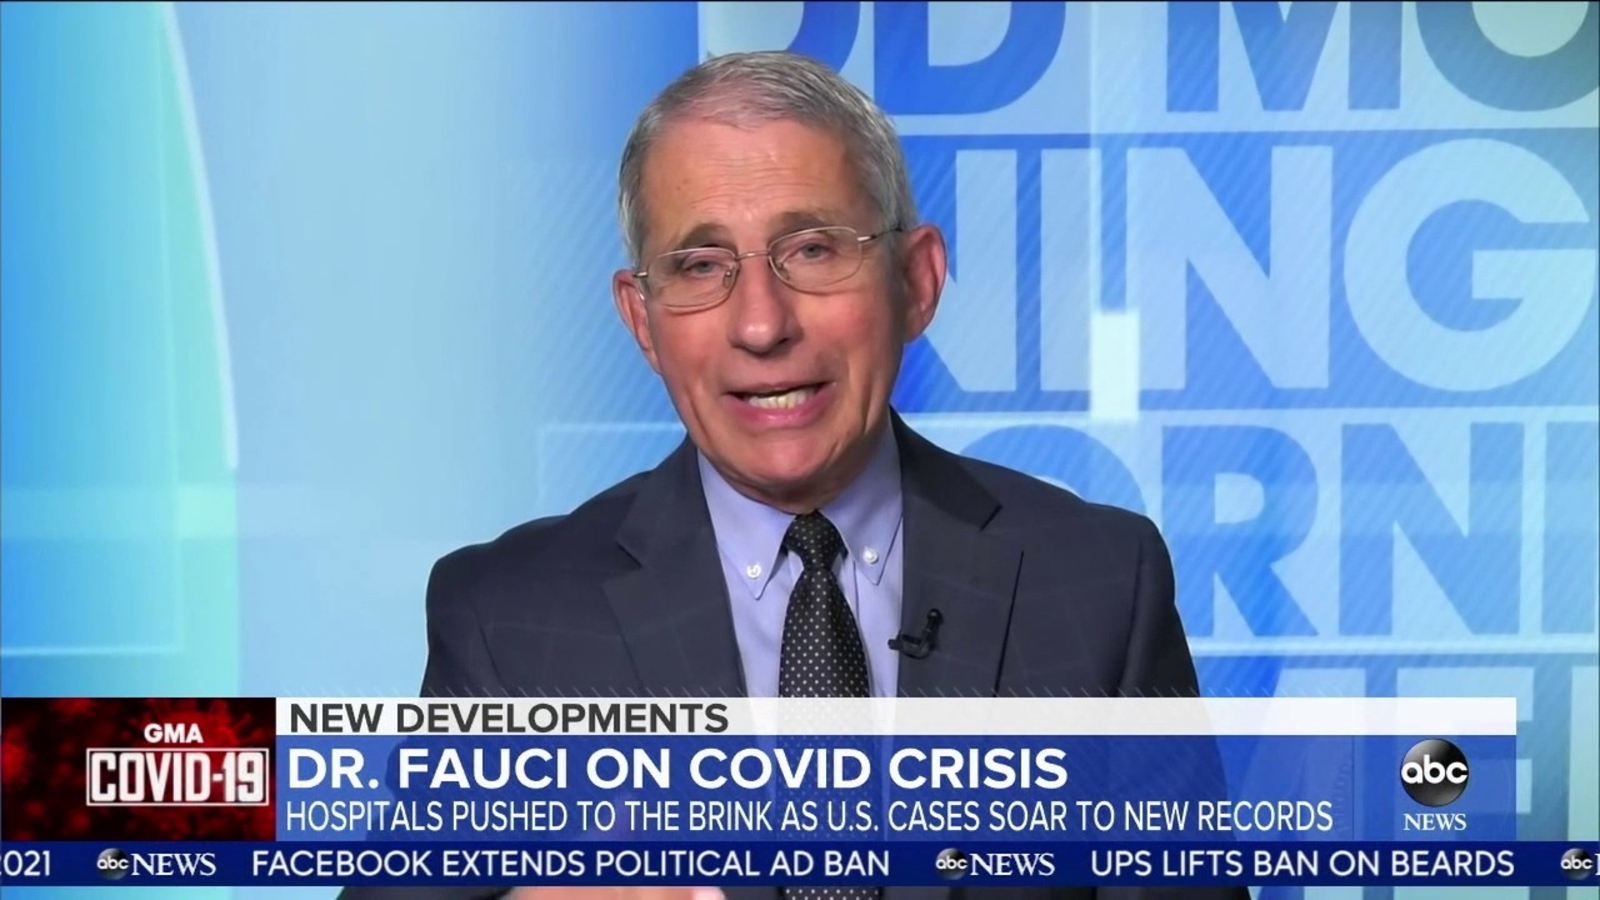 Dr. Fauci's hopeful message to those with COVID-19 fatigue ...